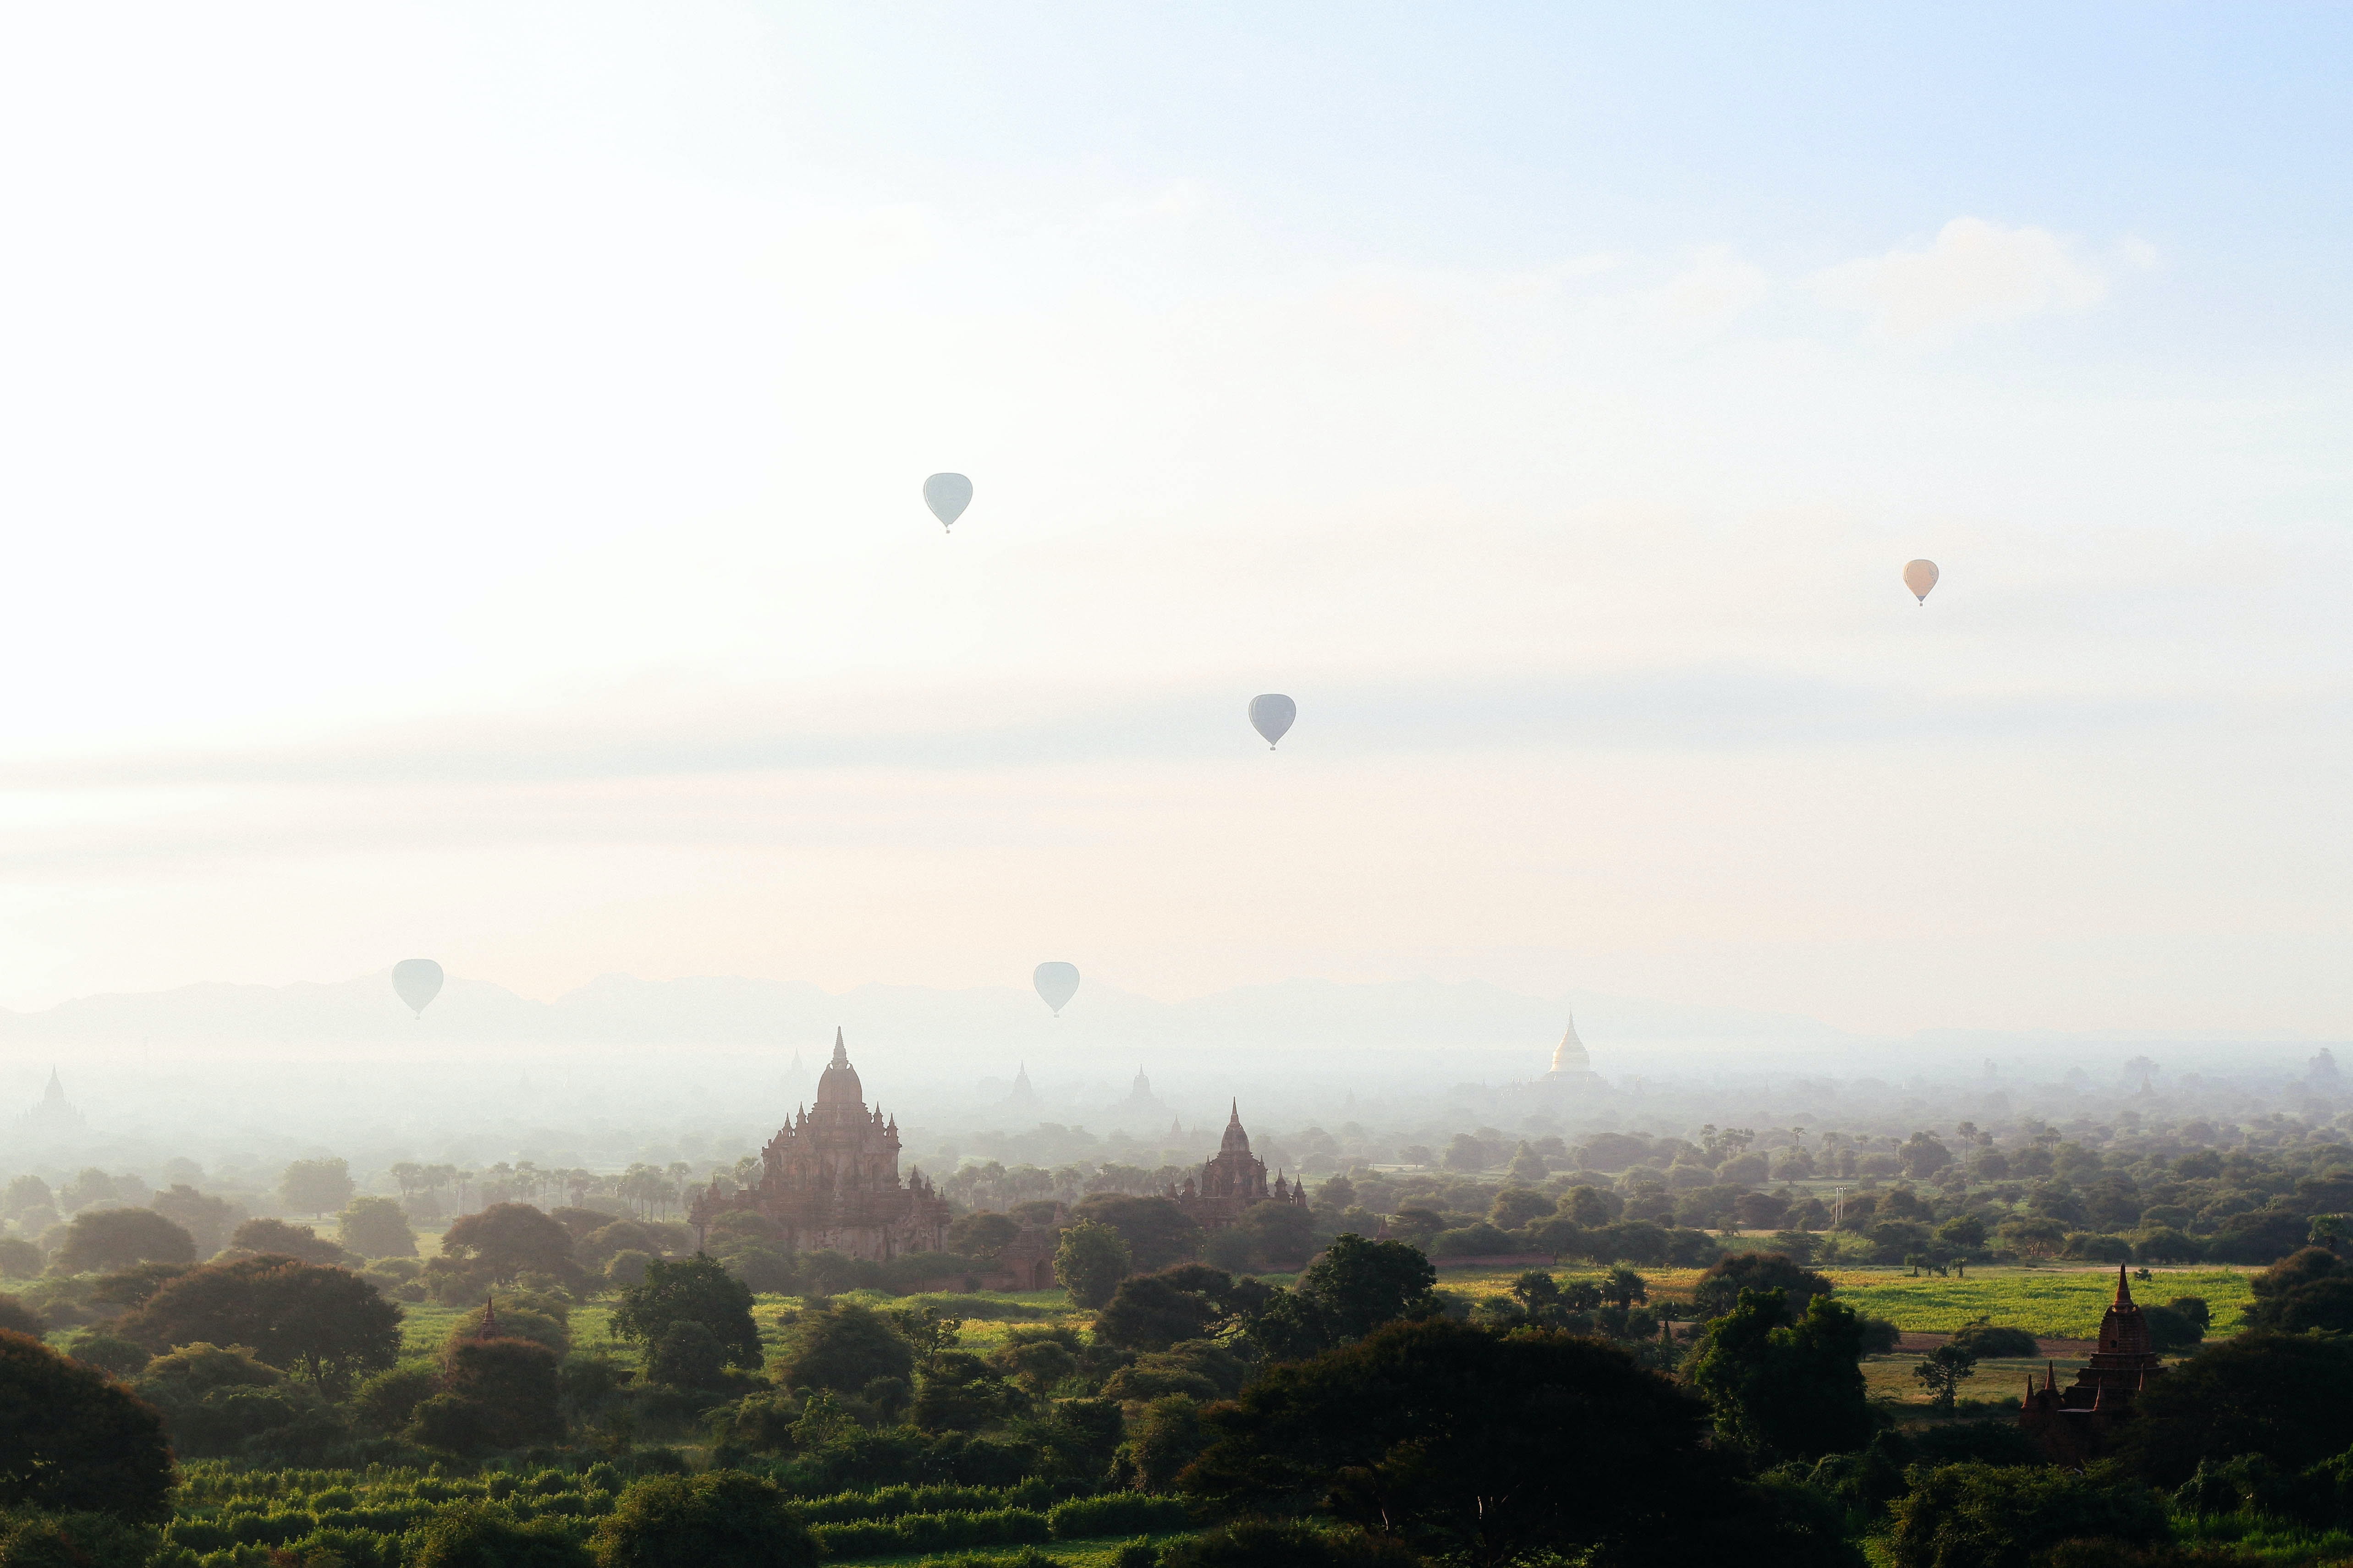 A landscape view of temples with hot air balloons going into the sky in old began.